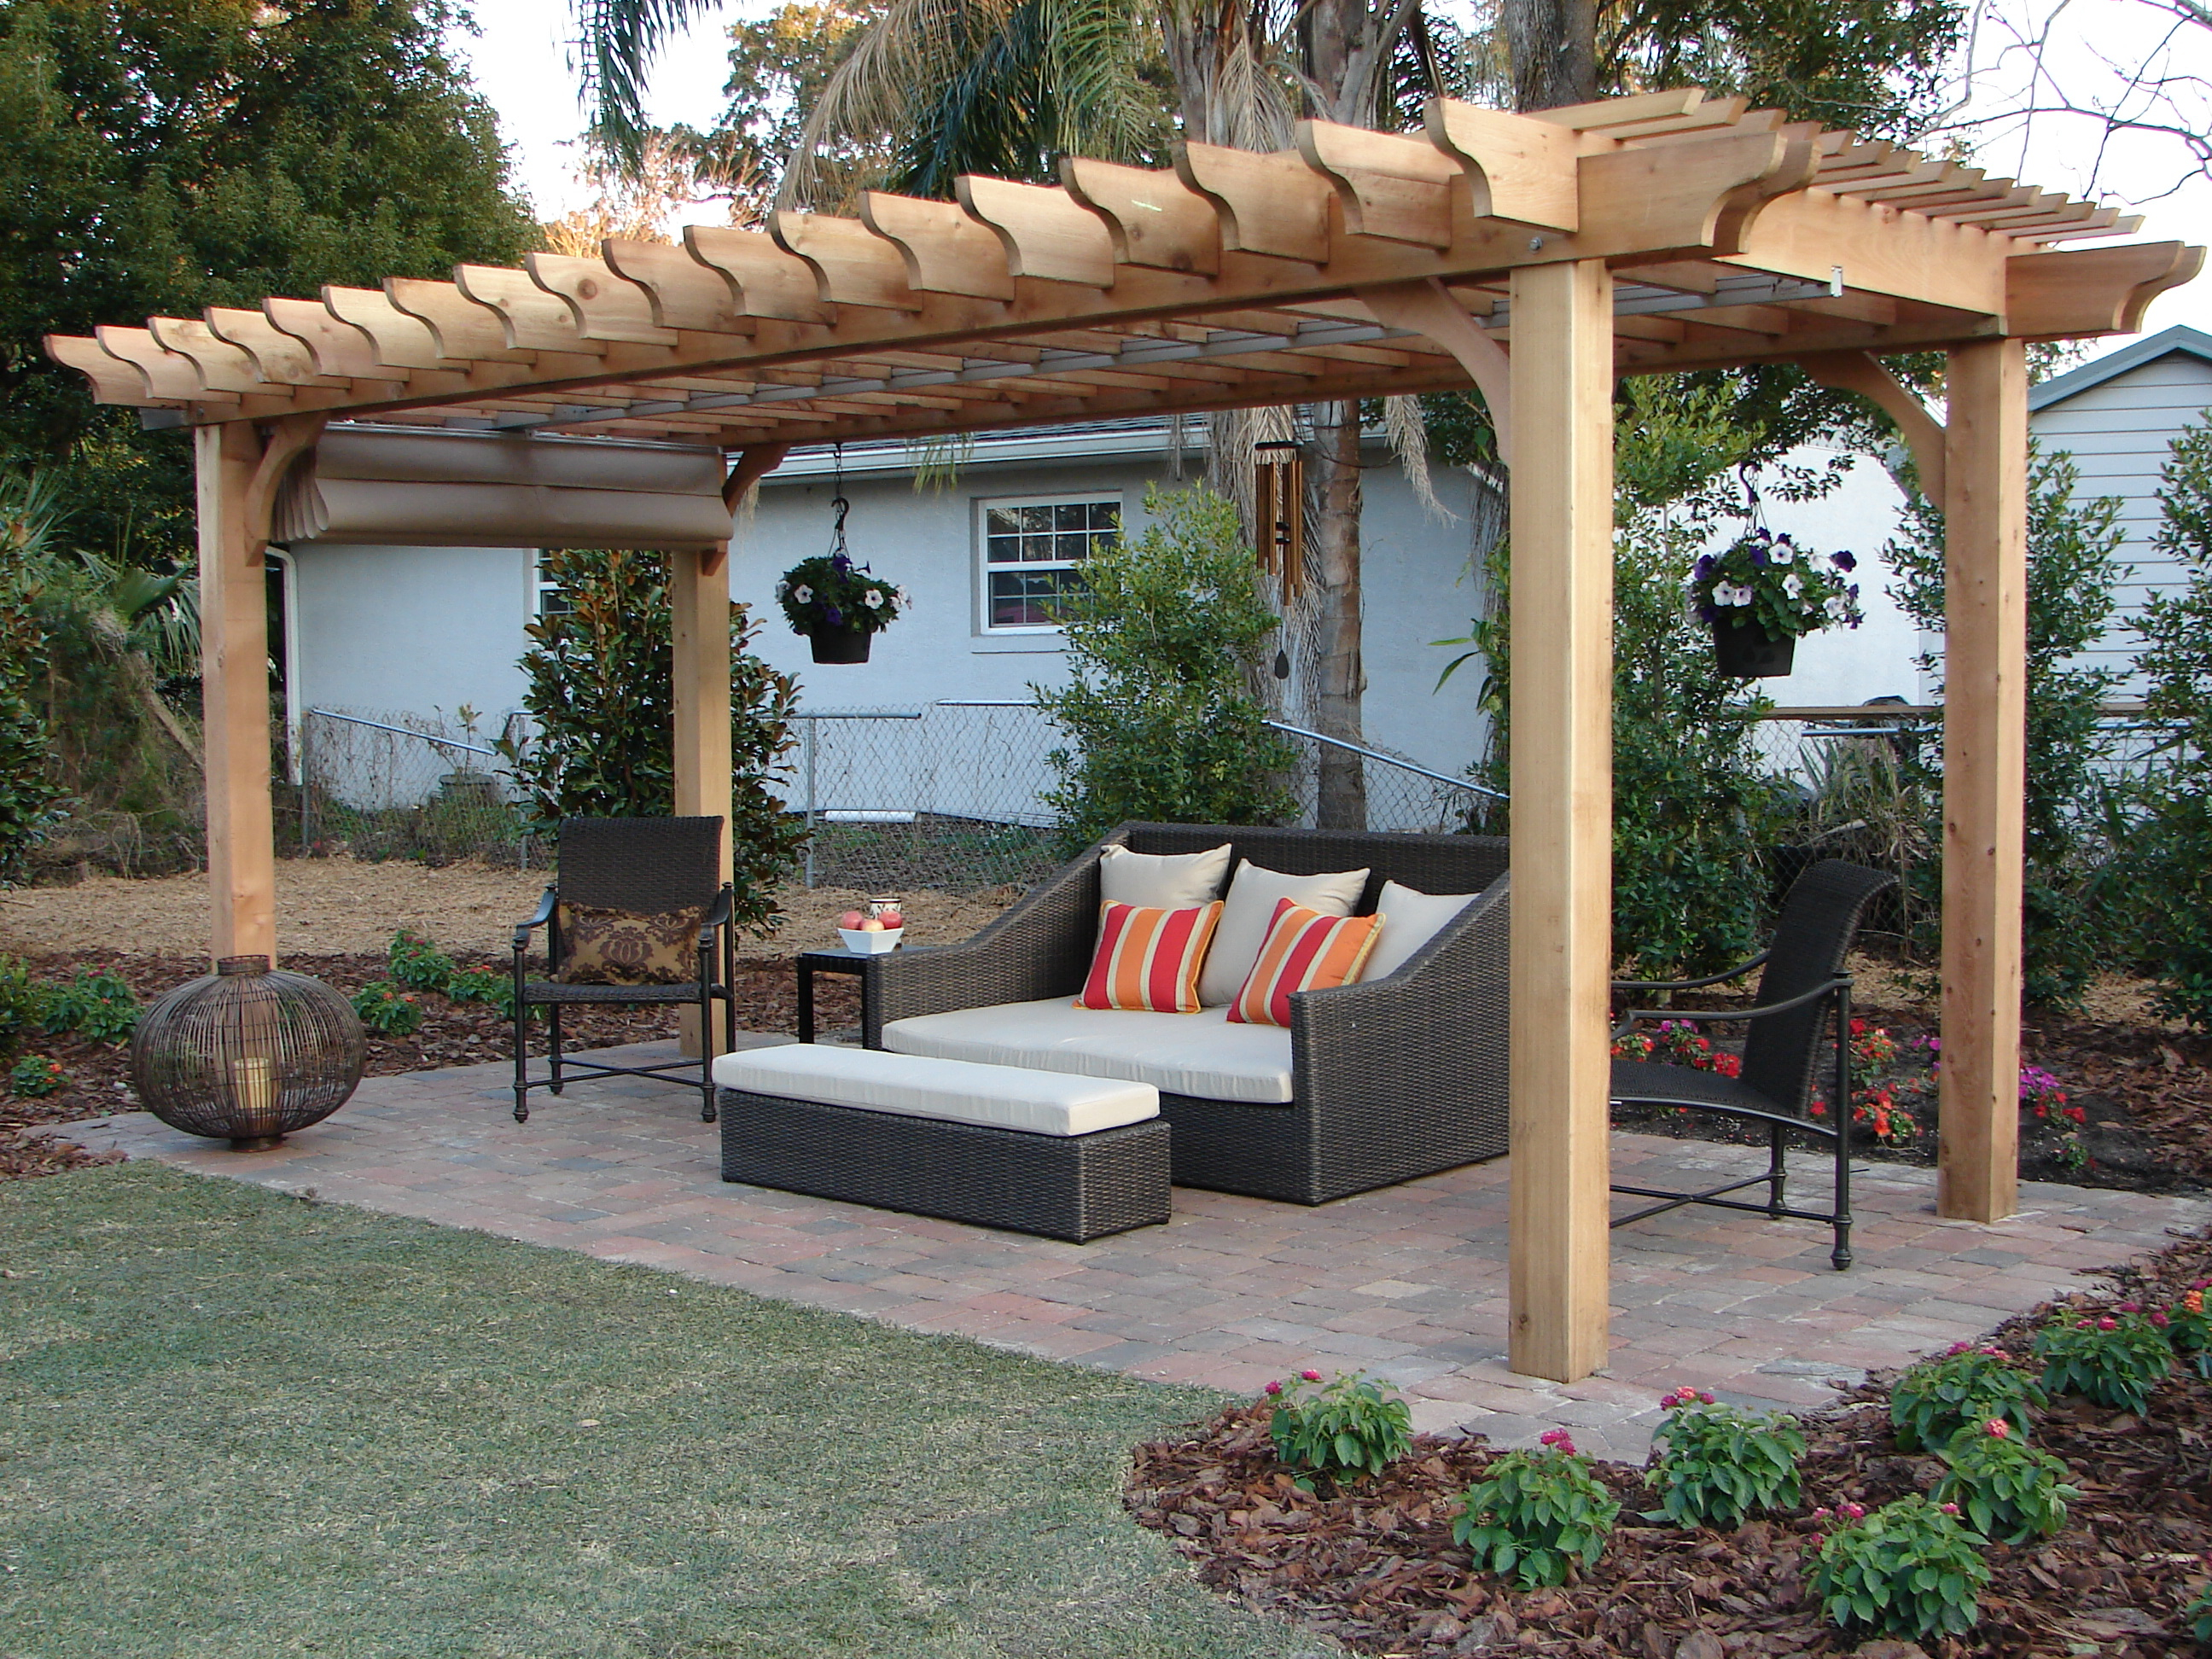 california pergola quality pergola kits farmhouse pergola affordable pergola  kit ... RNBODWF